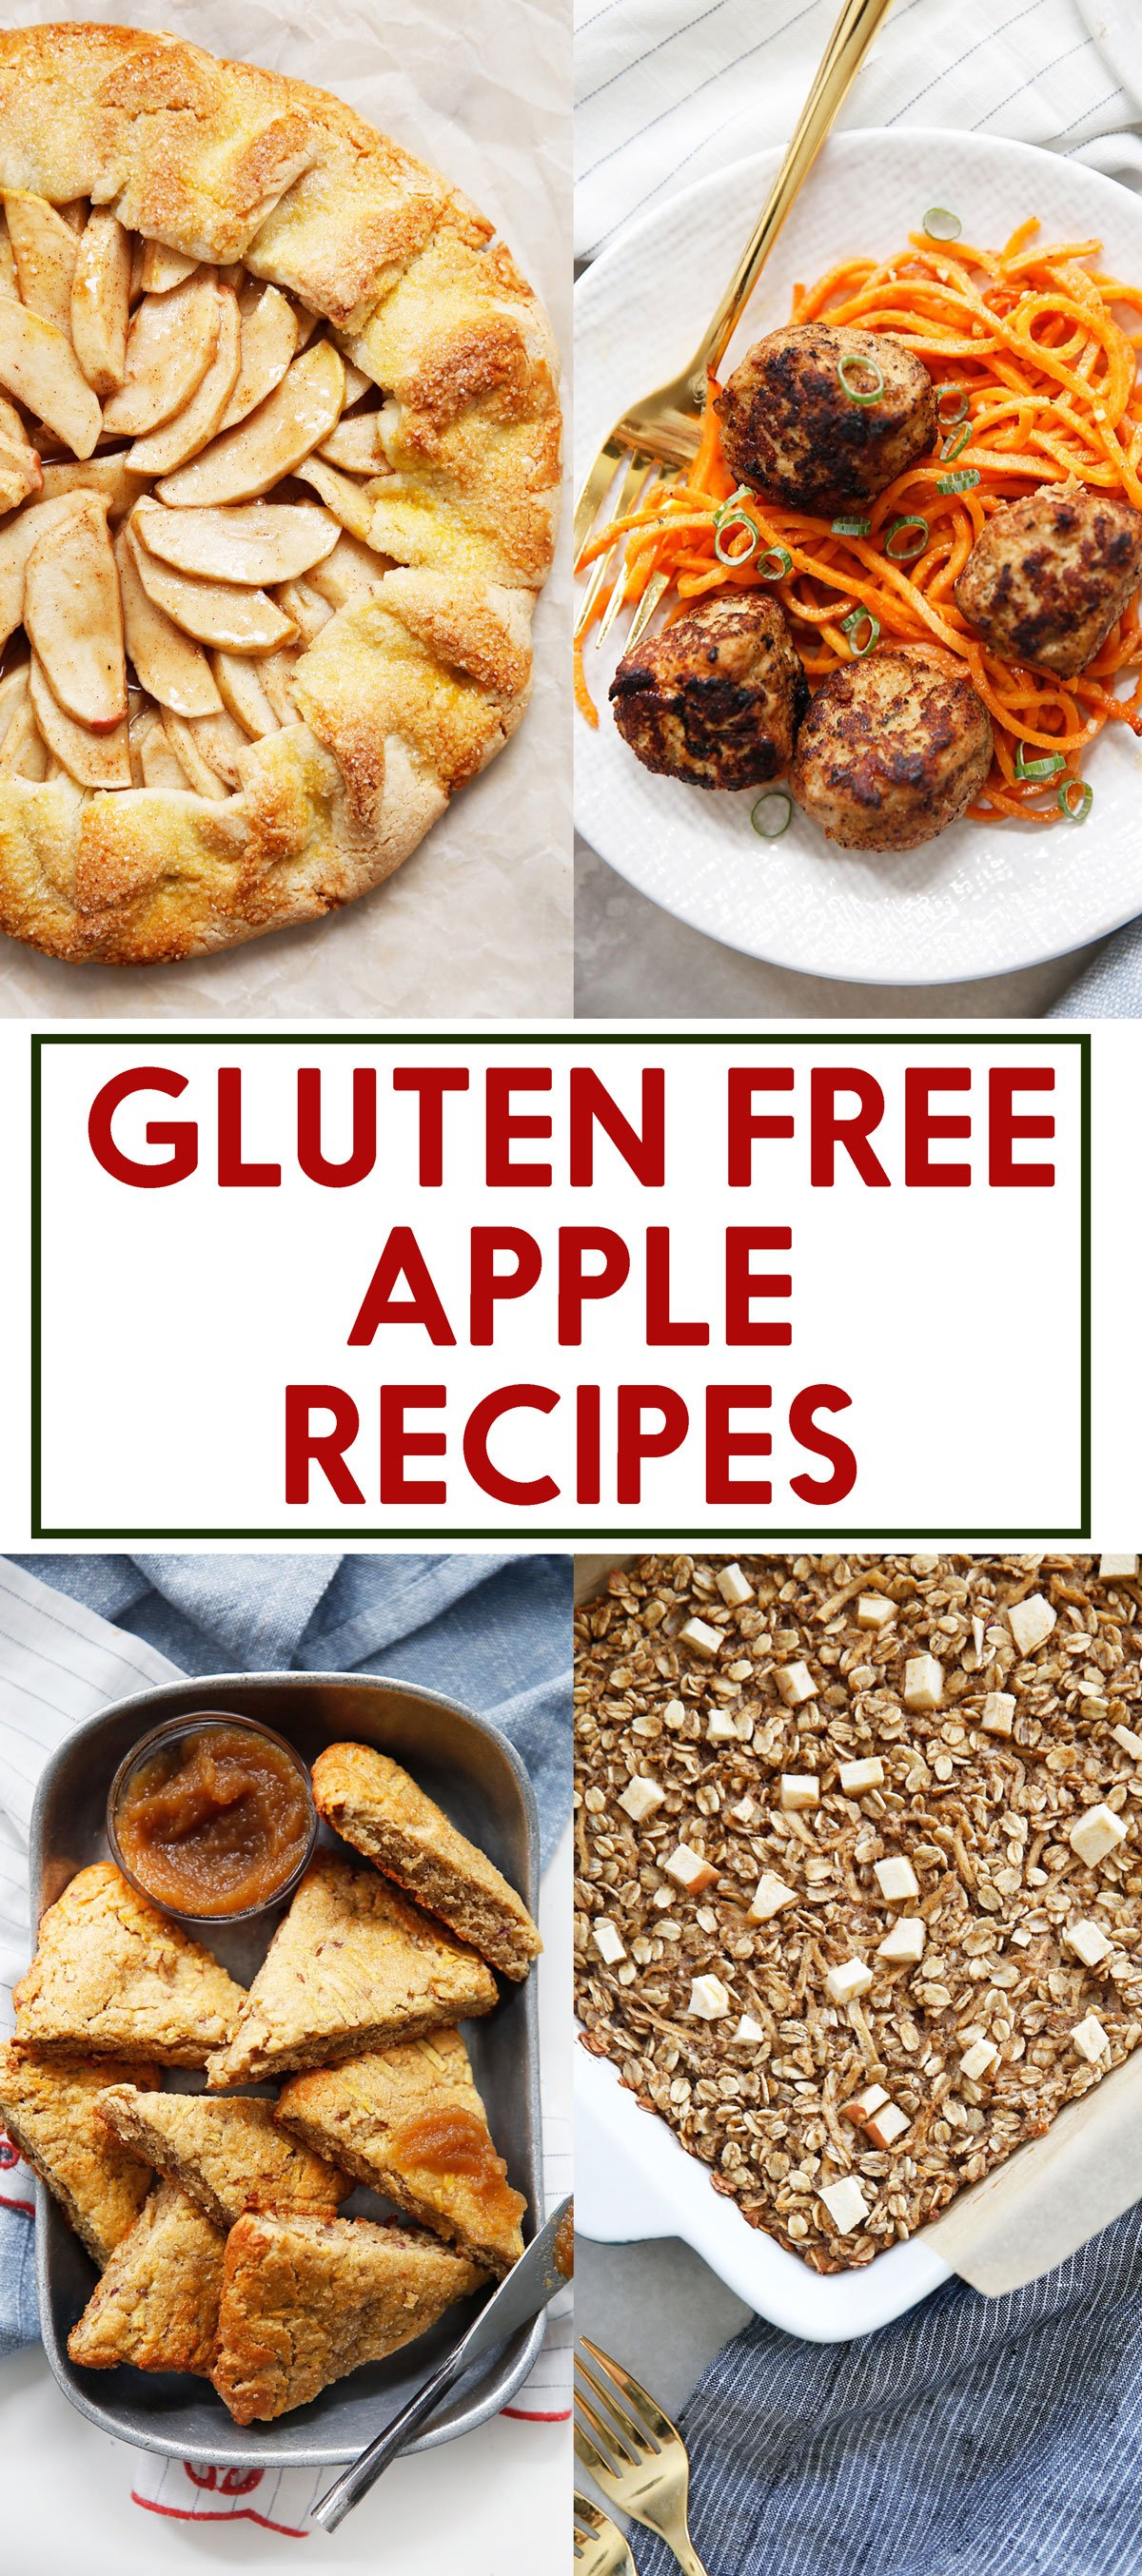 Gluten Free Apple Recipes